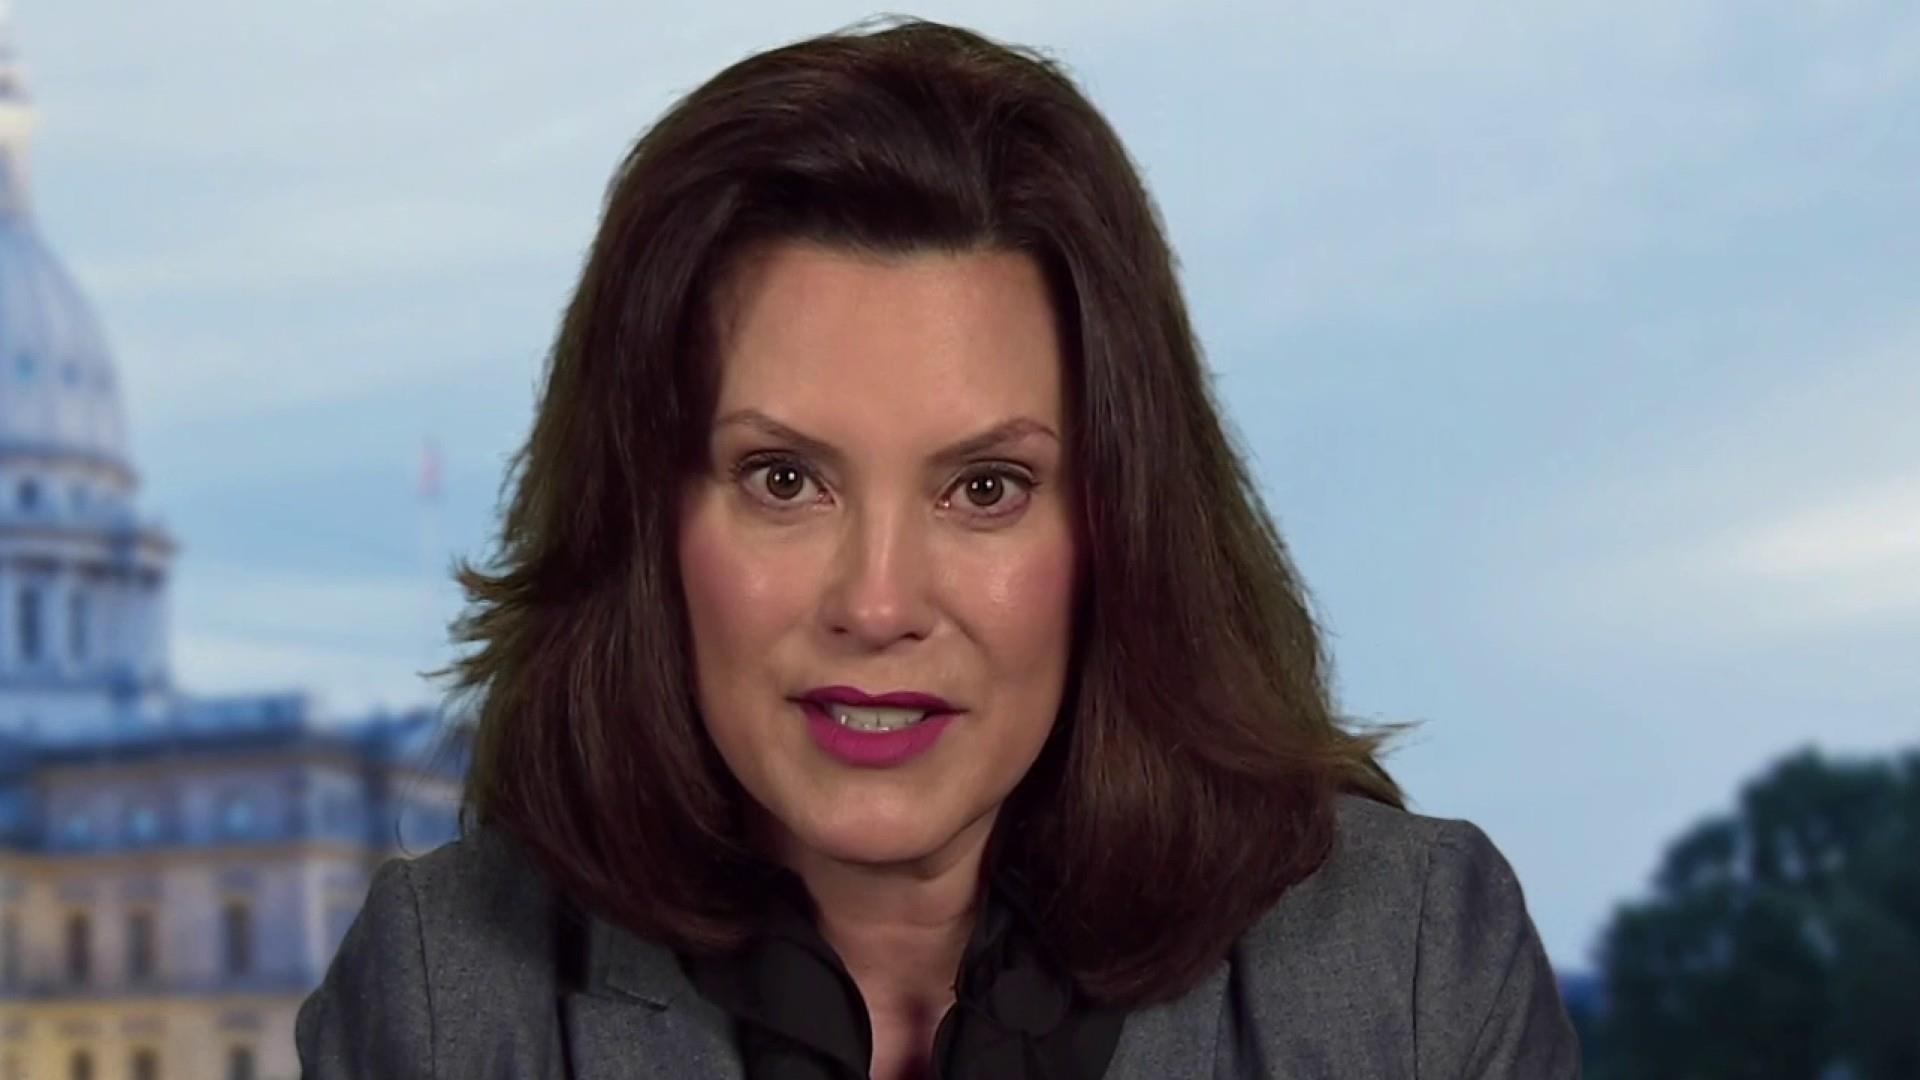 Michigan Governor Gretchen Whitmer On Coronavirus Precautions